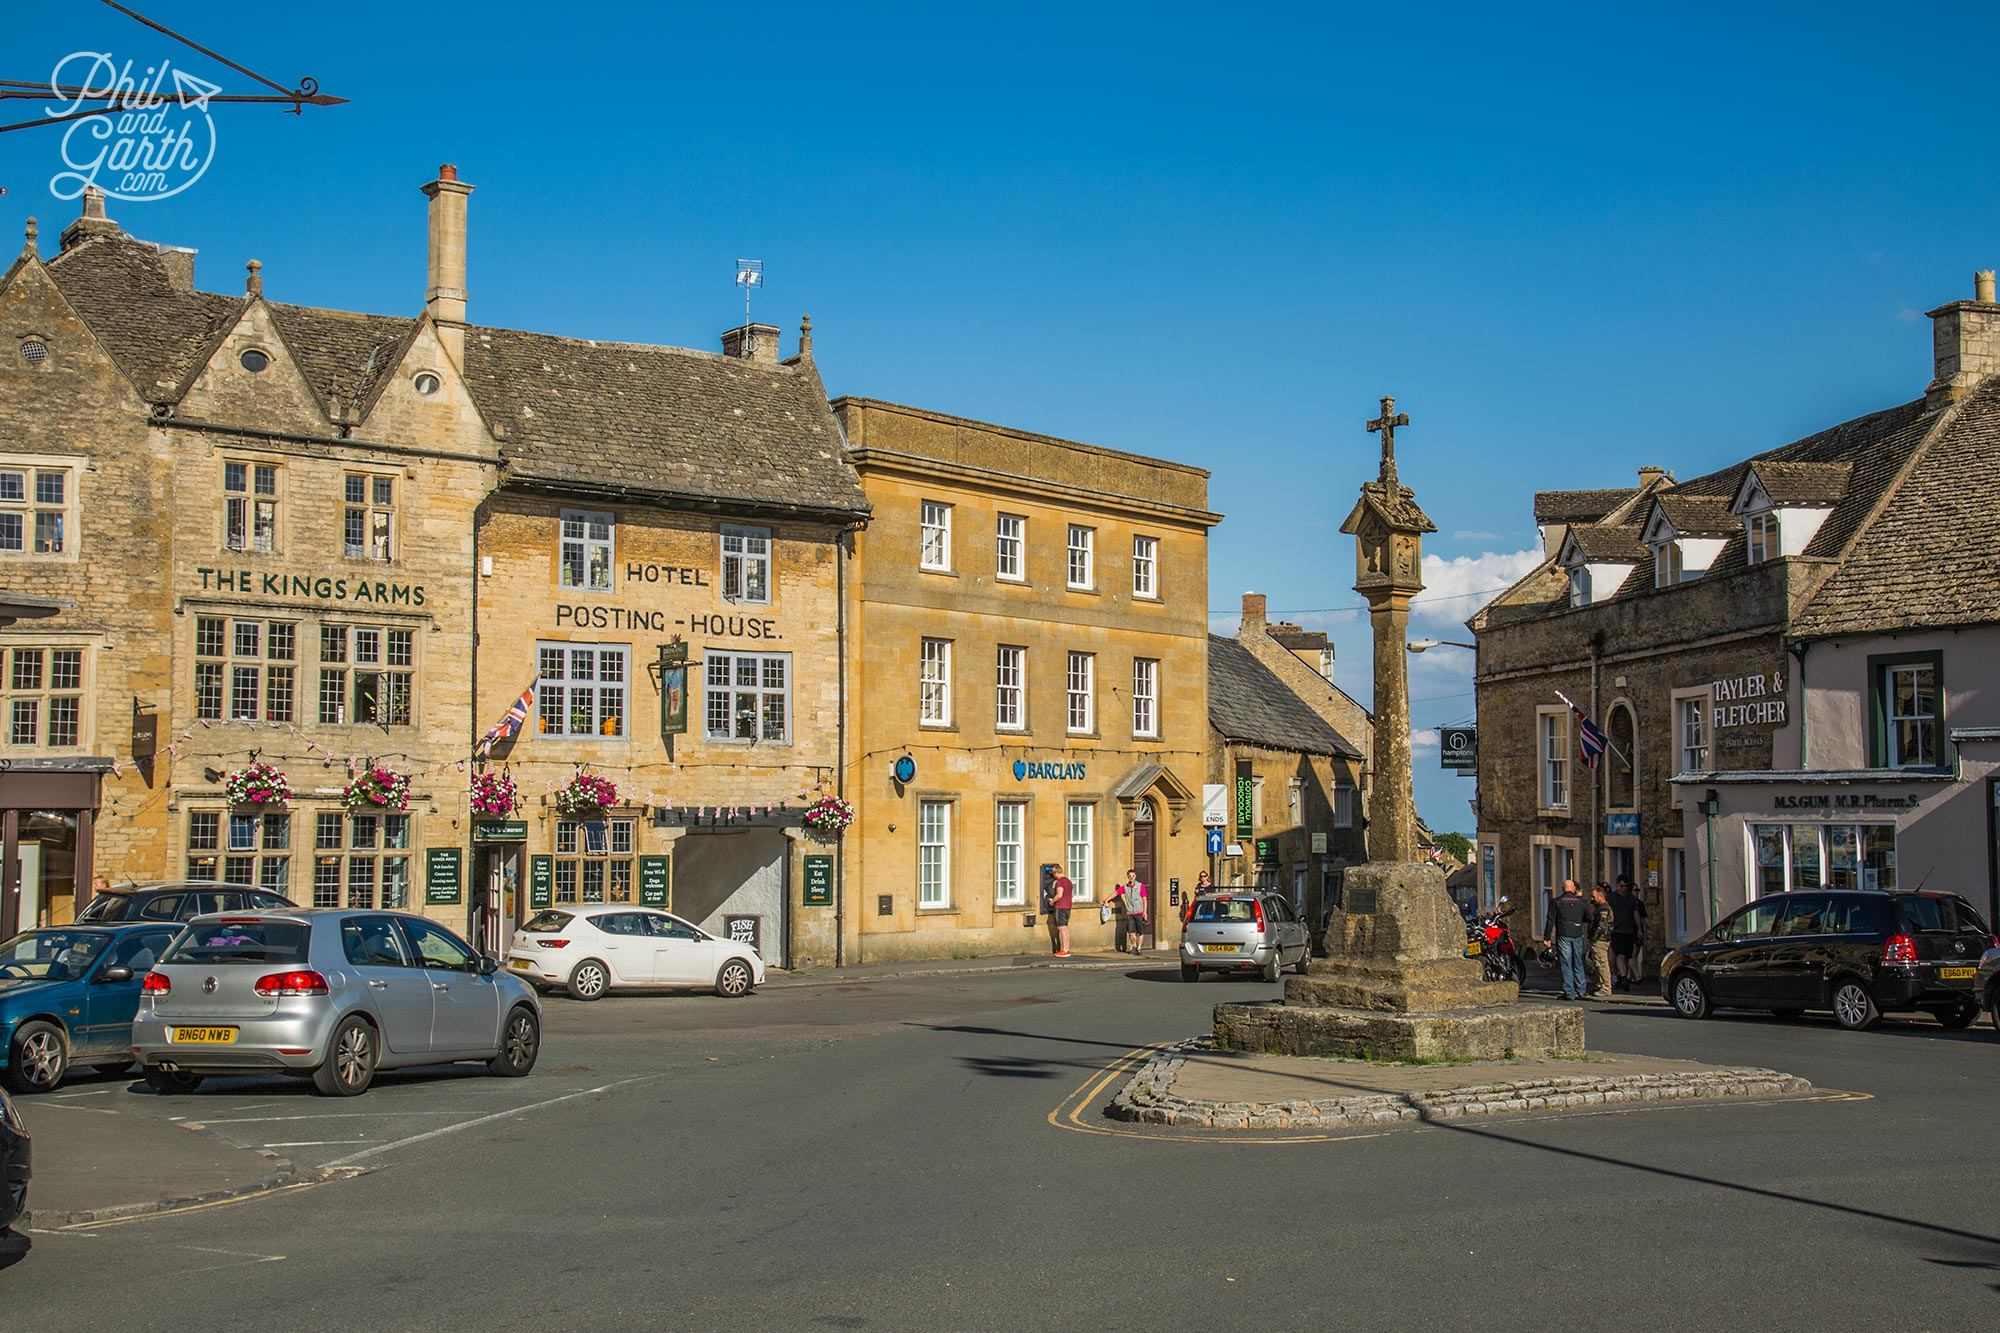 The ancient market cross at Stow-on-the-Wold